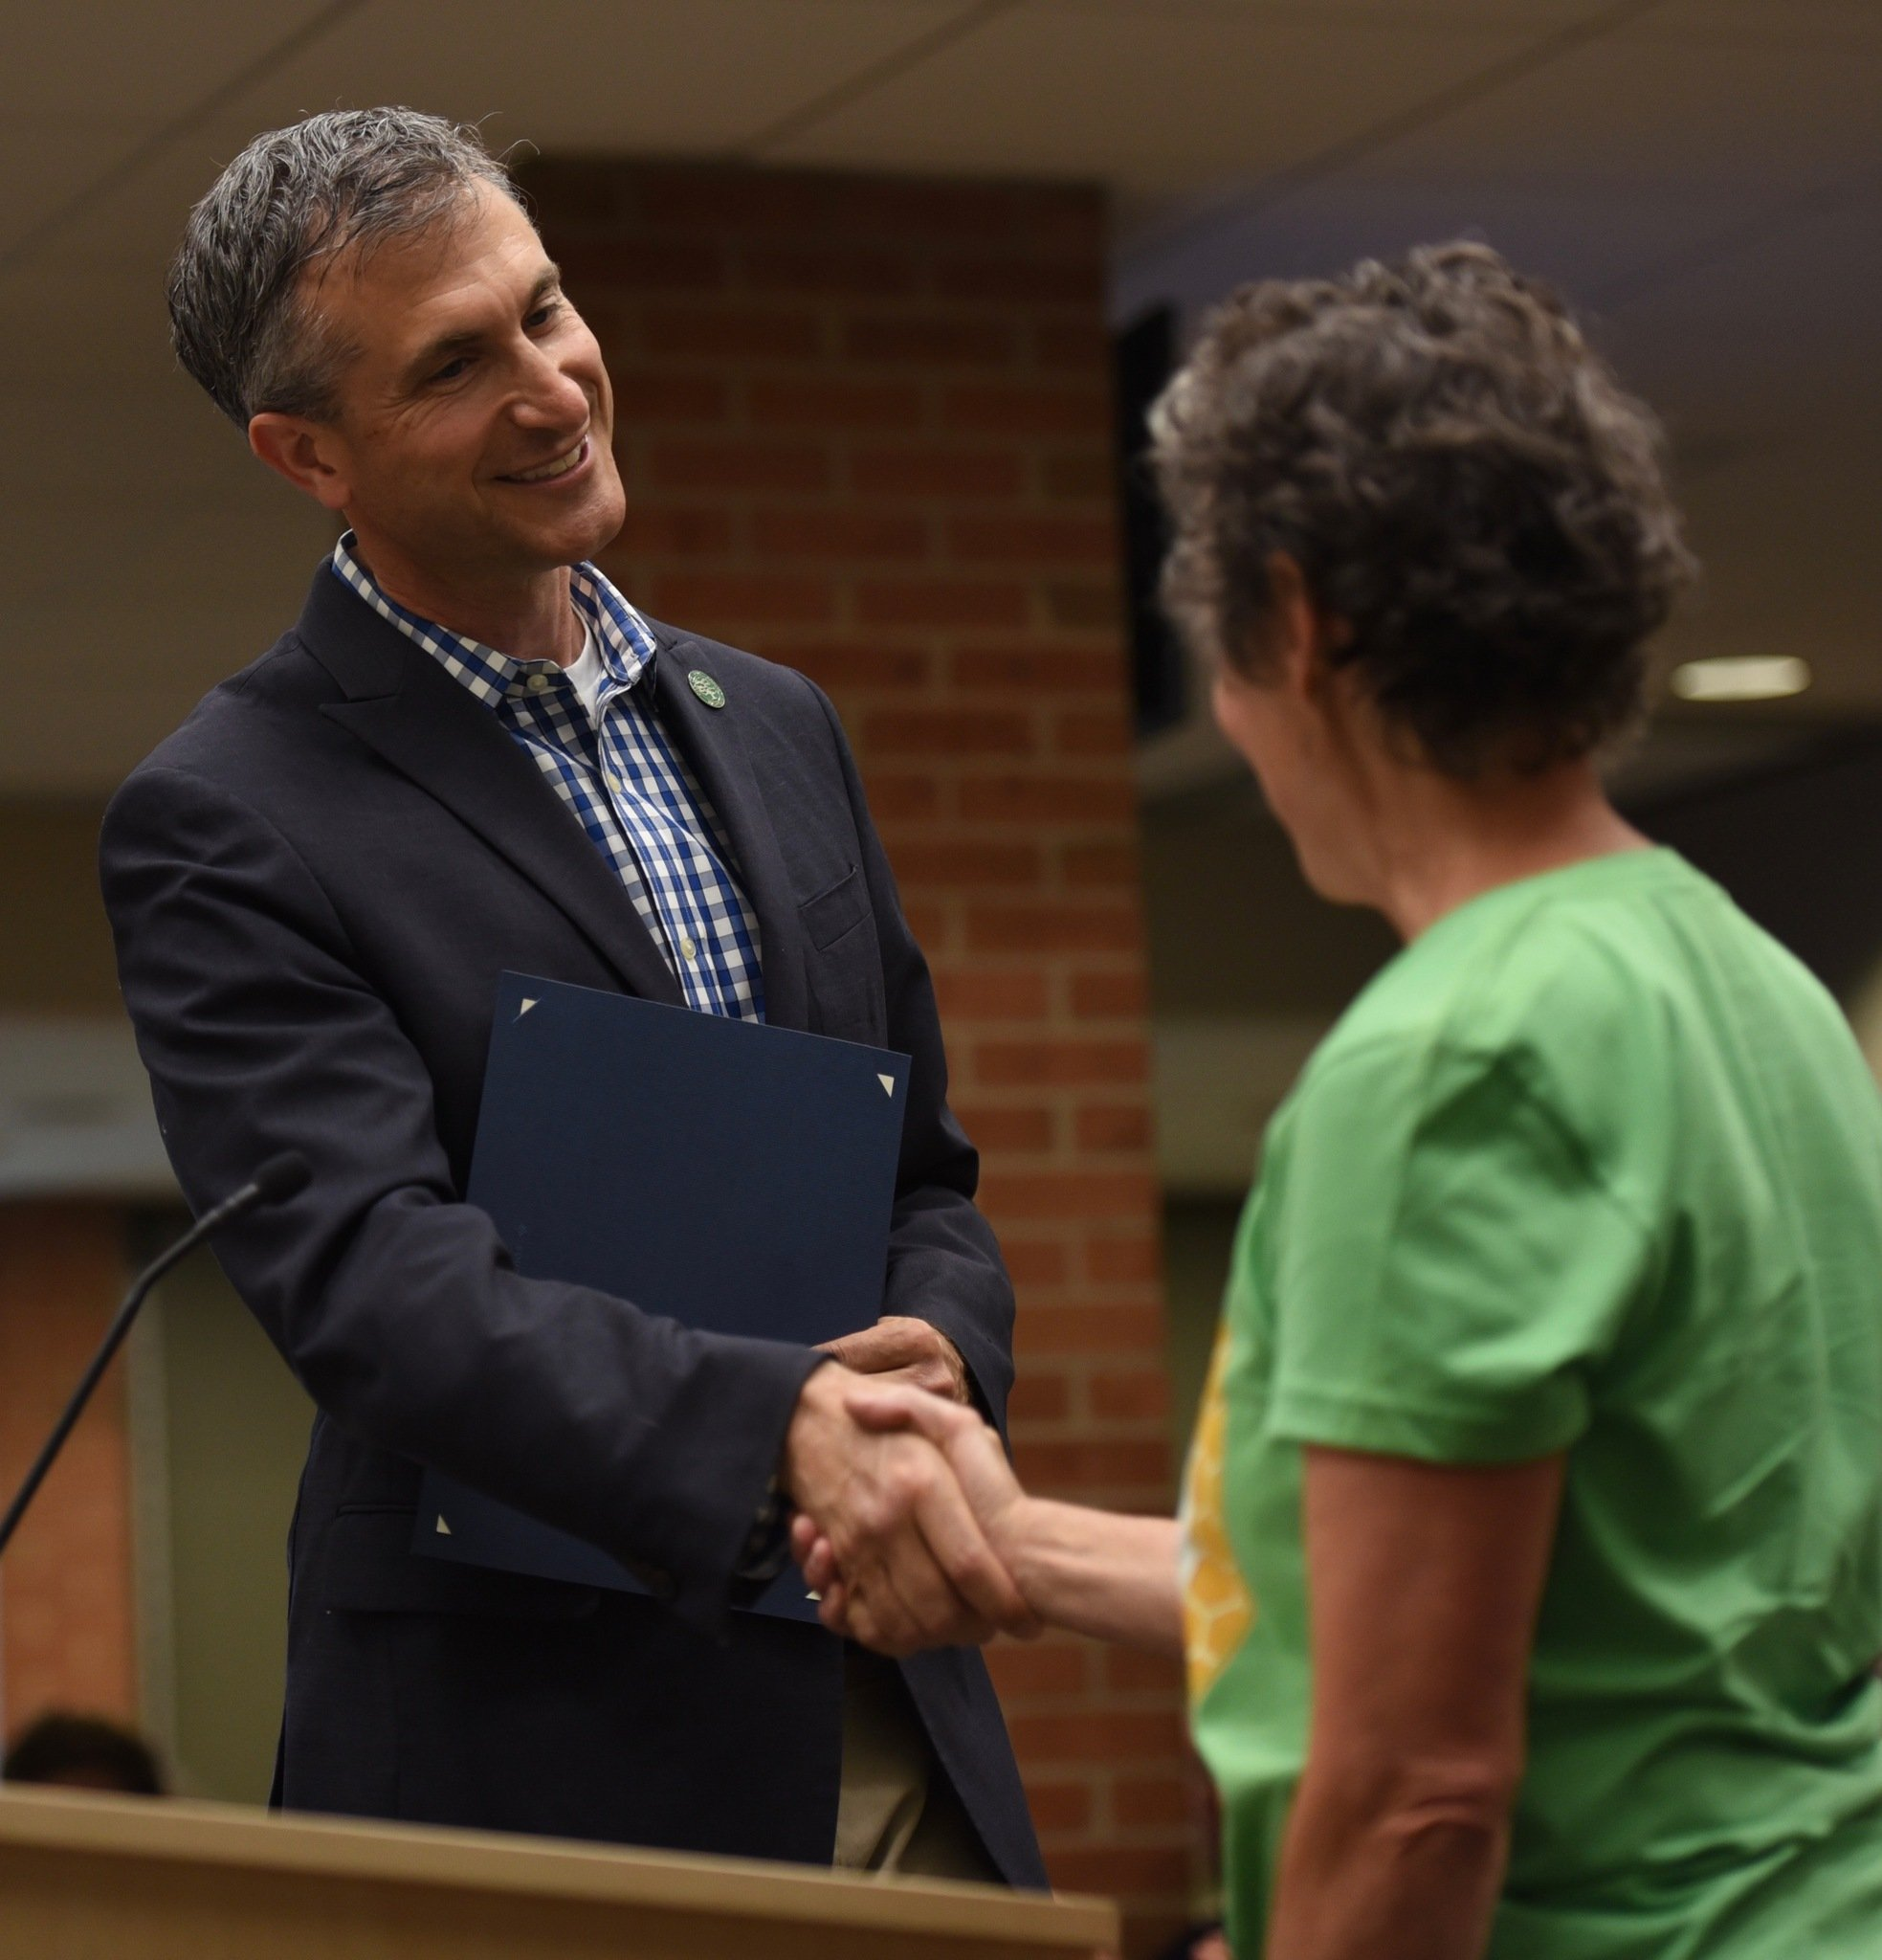 Mayor Christopher Taylor shakes hands with Eileen Dickinson after reading a proclamation in honor of National Pollinator Week on June 6, 2016.